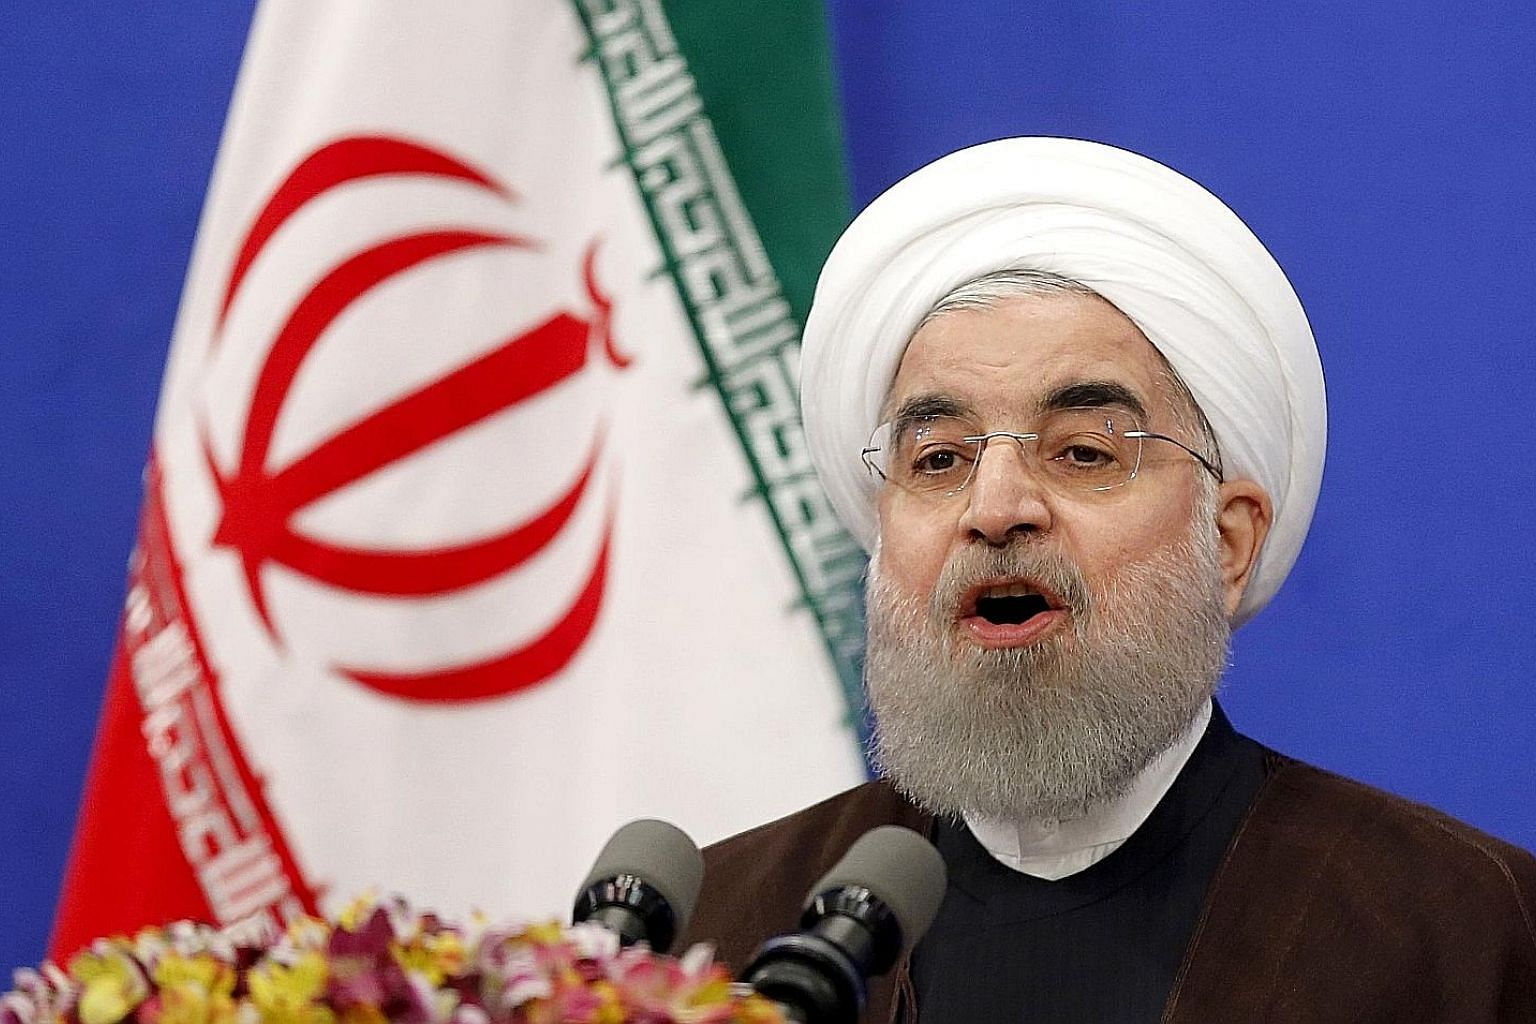 President Hassan Rouhani delivering a televised speech in Teheran yesterday following his re-election. He said the vote showed that Iranians have rejected calls by his hardline opponents to stop reforms.